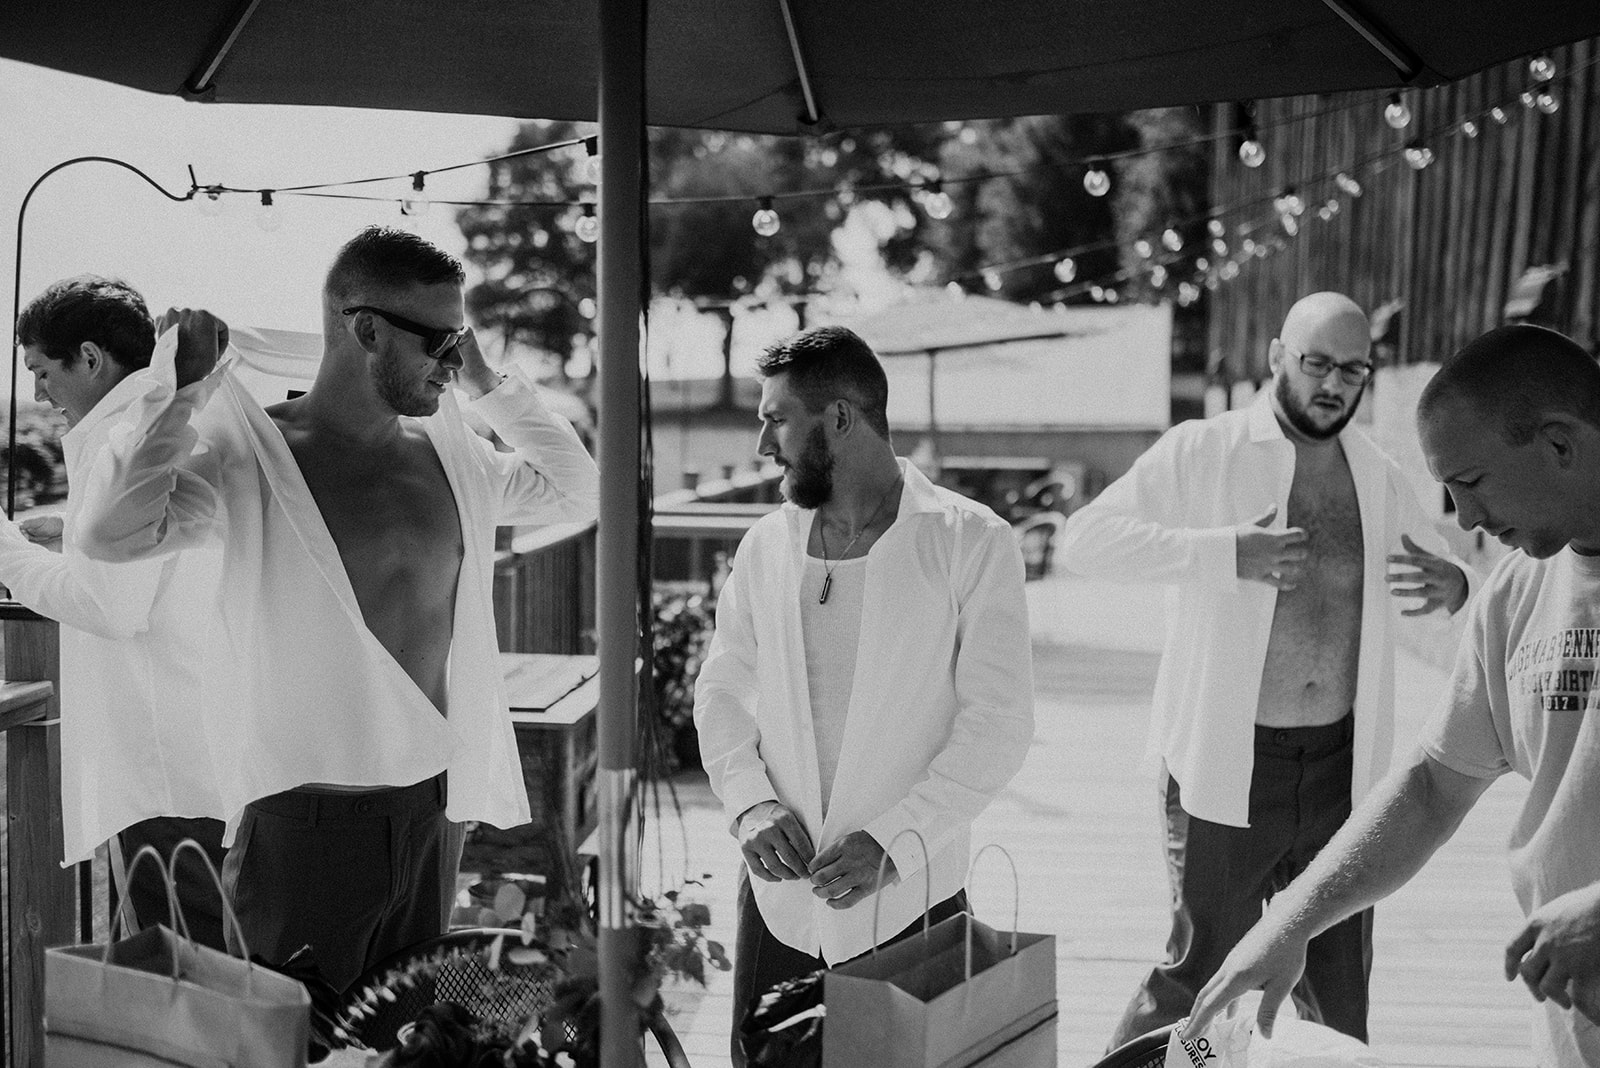 overthevineswisconsinwedding_0325.jpg